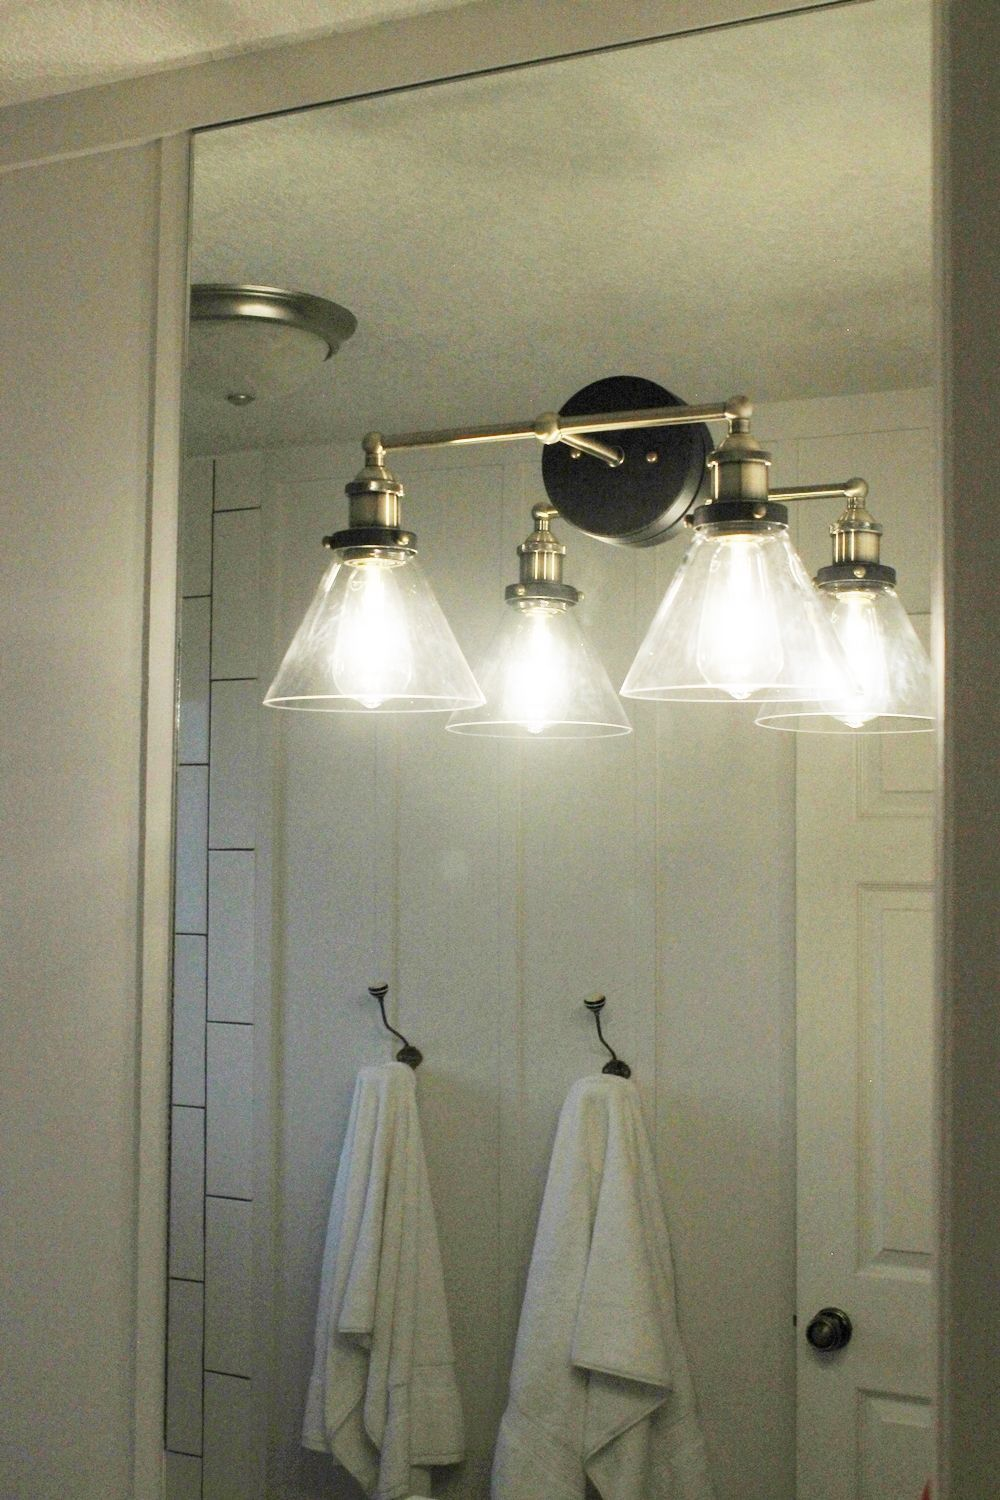 Vanity Lights Installed On Mirror : How to Mount a Light On Top of a Mirror Bathroom Vanity